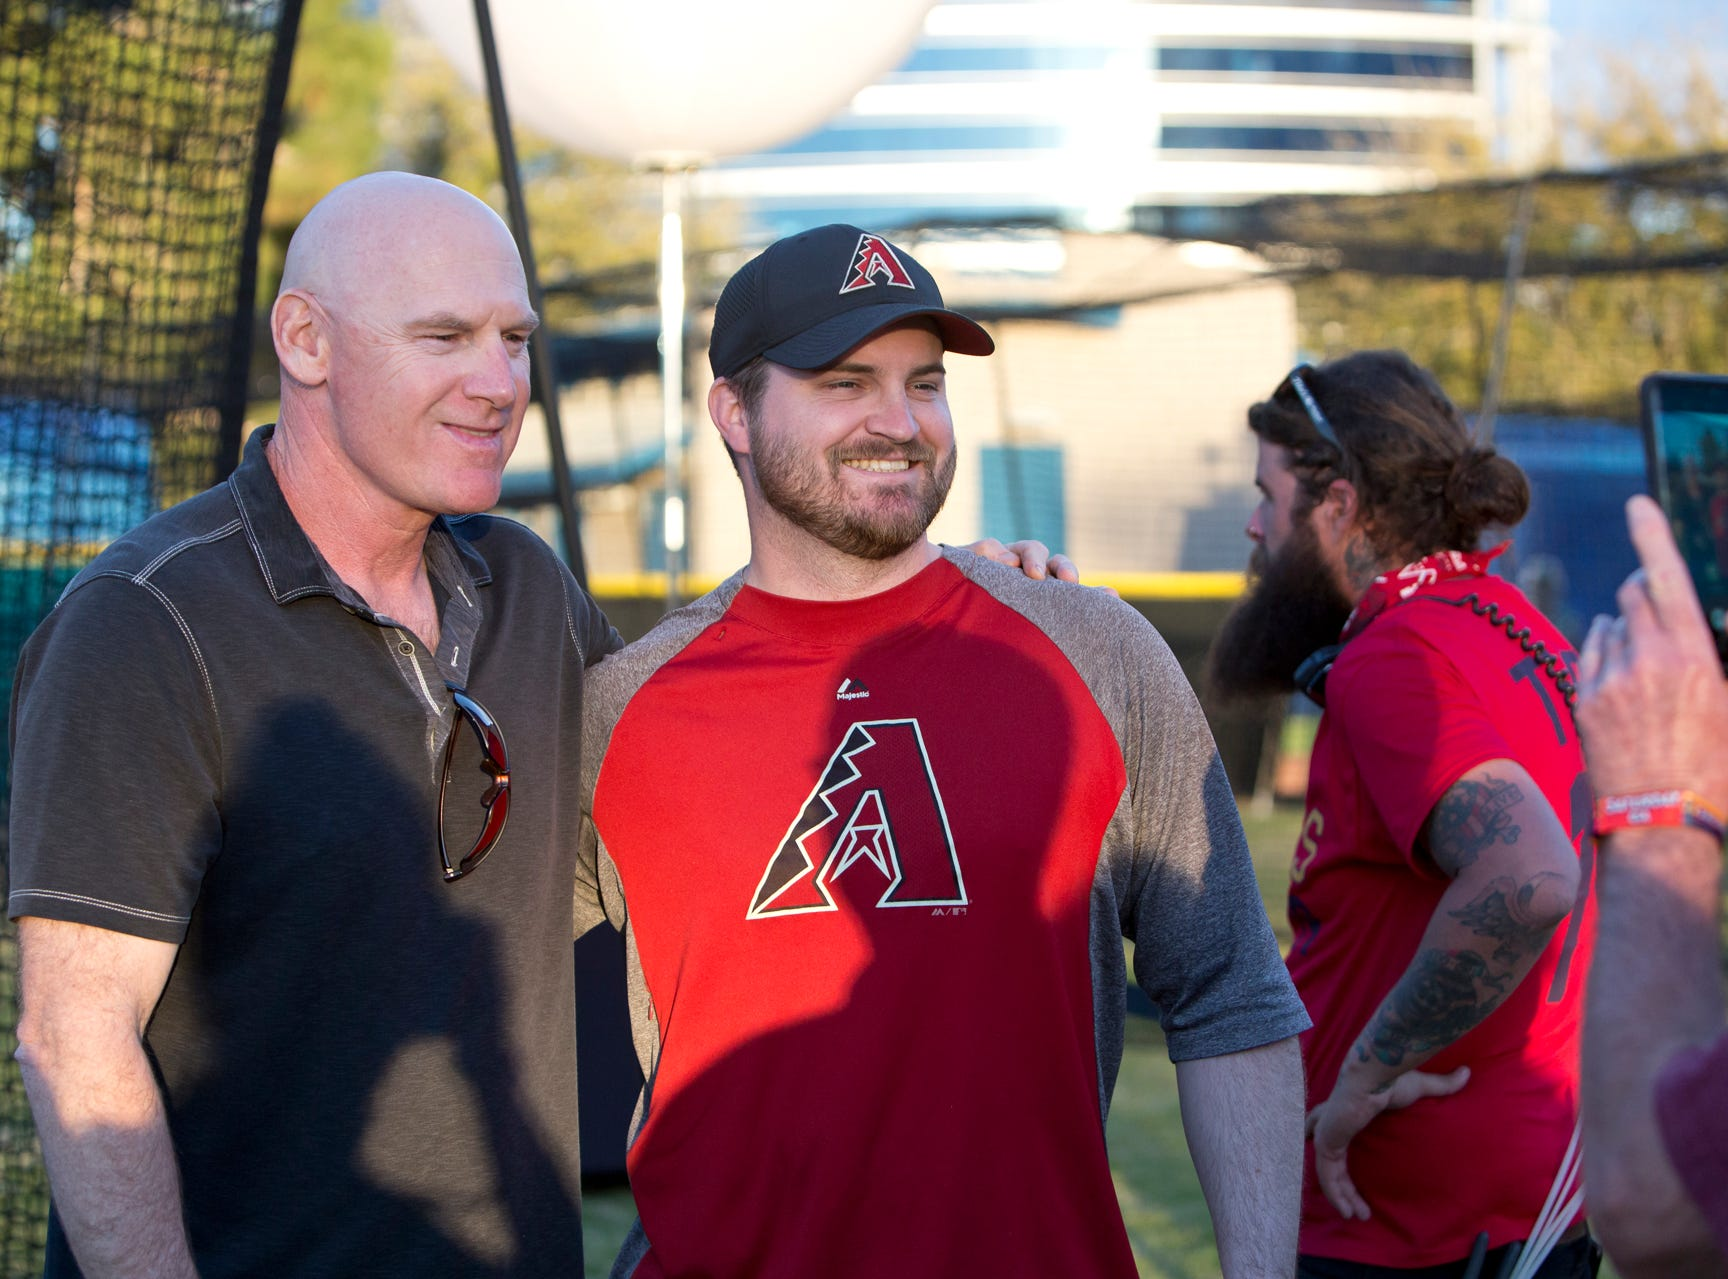 Matt Williams poses with a fan at the batting cages during the Innings Festival on March 2, 2019, at Tempe Beach Park.